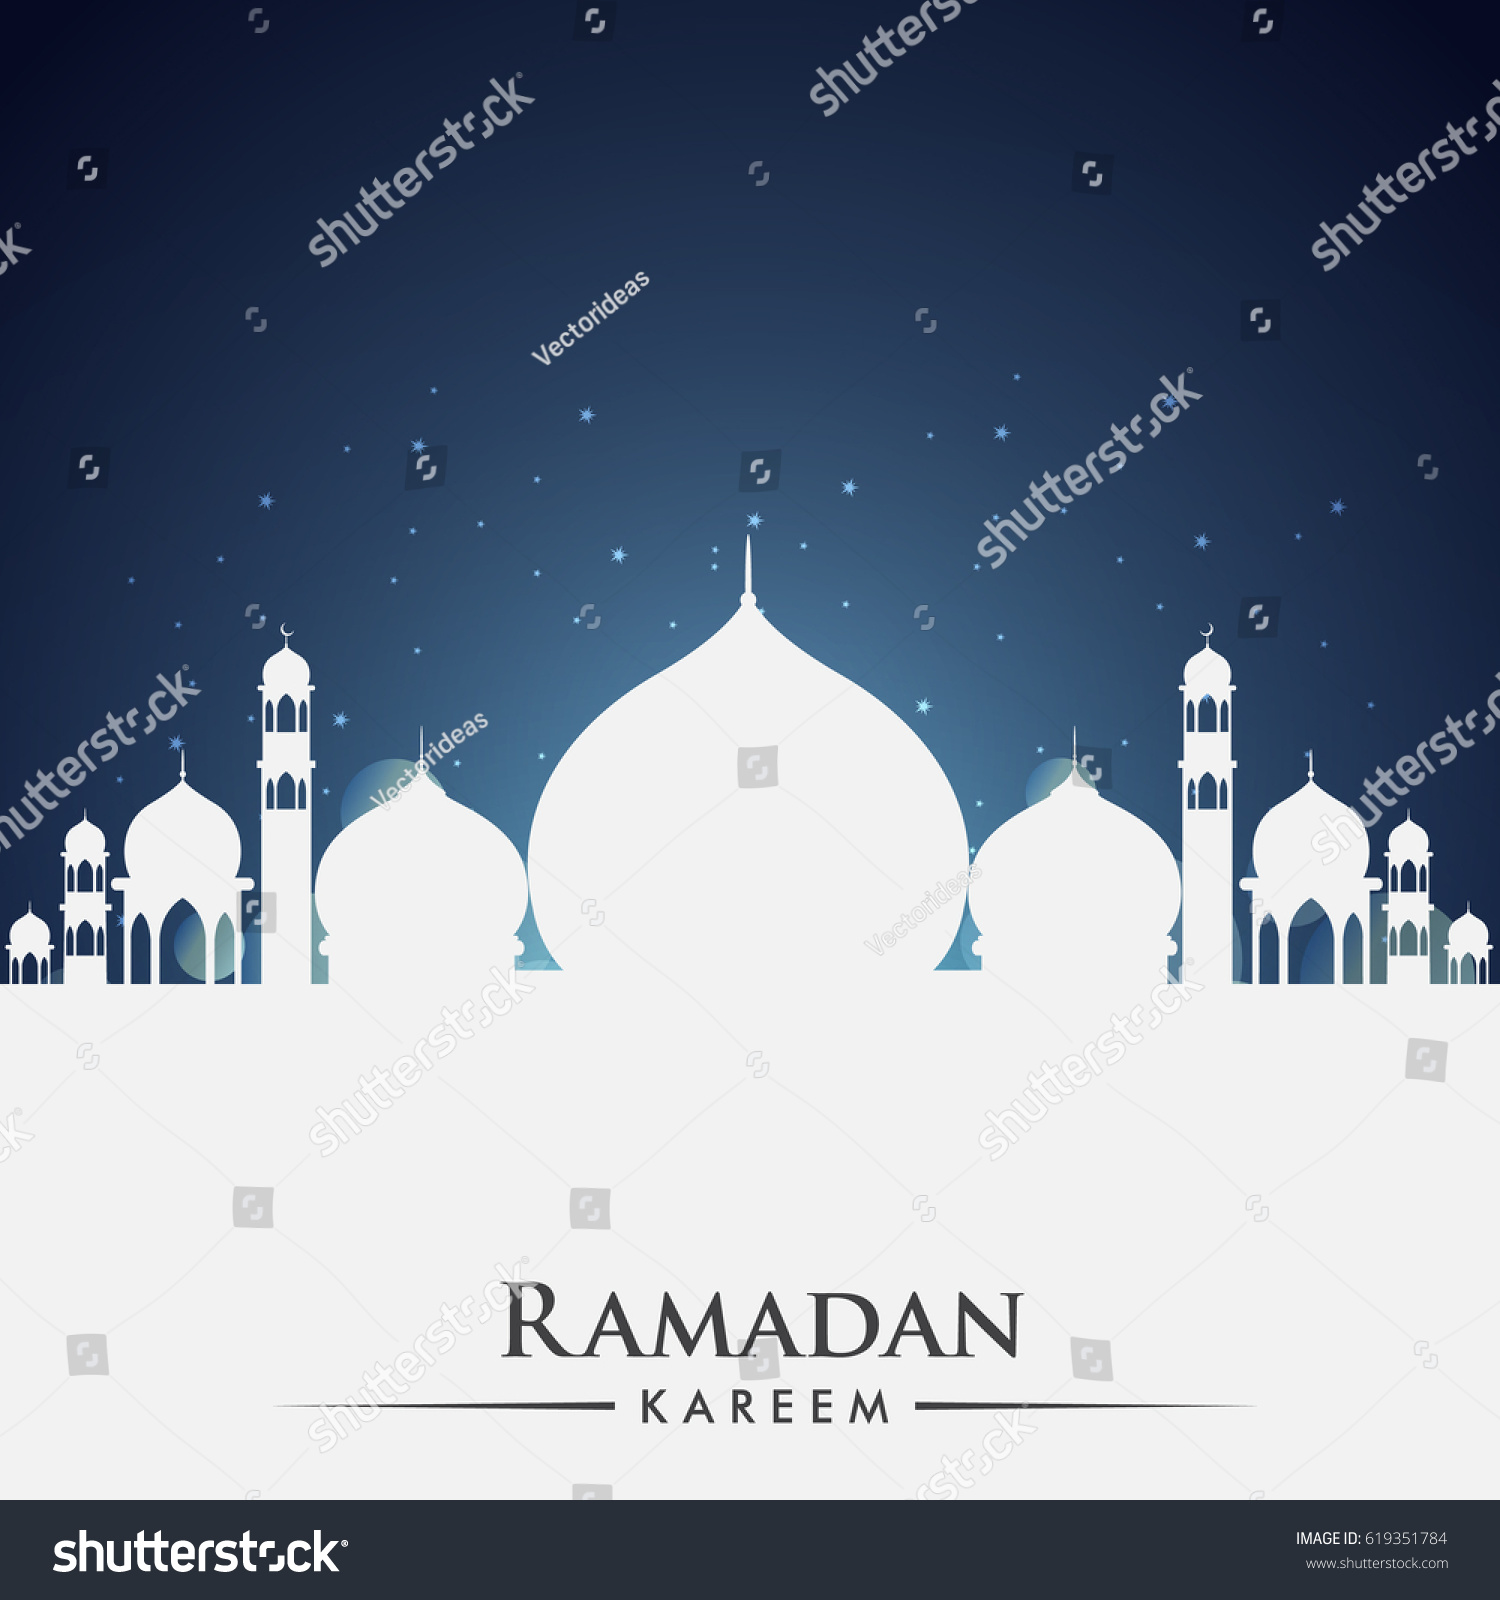 Similar Images Stock Photos Vectors Of Ramadan Greetings